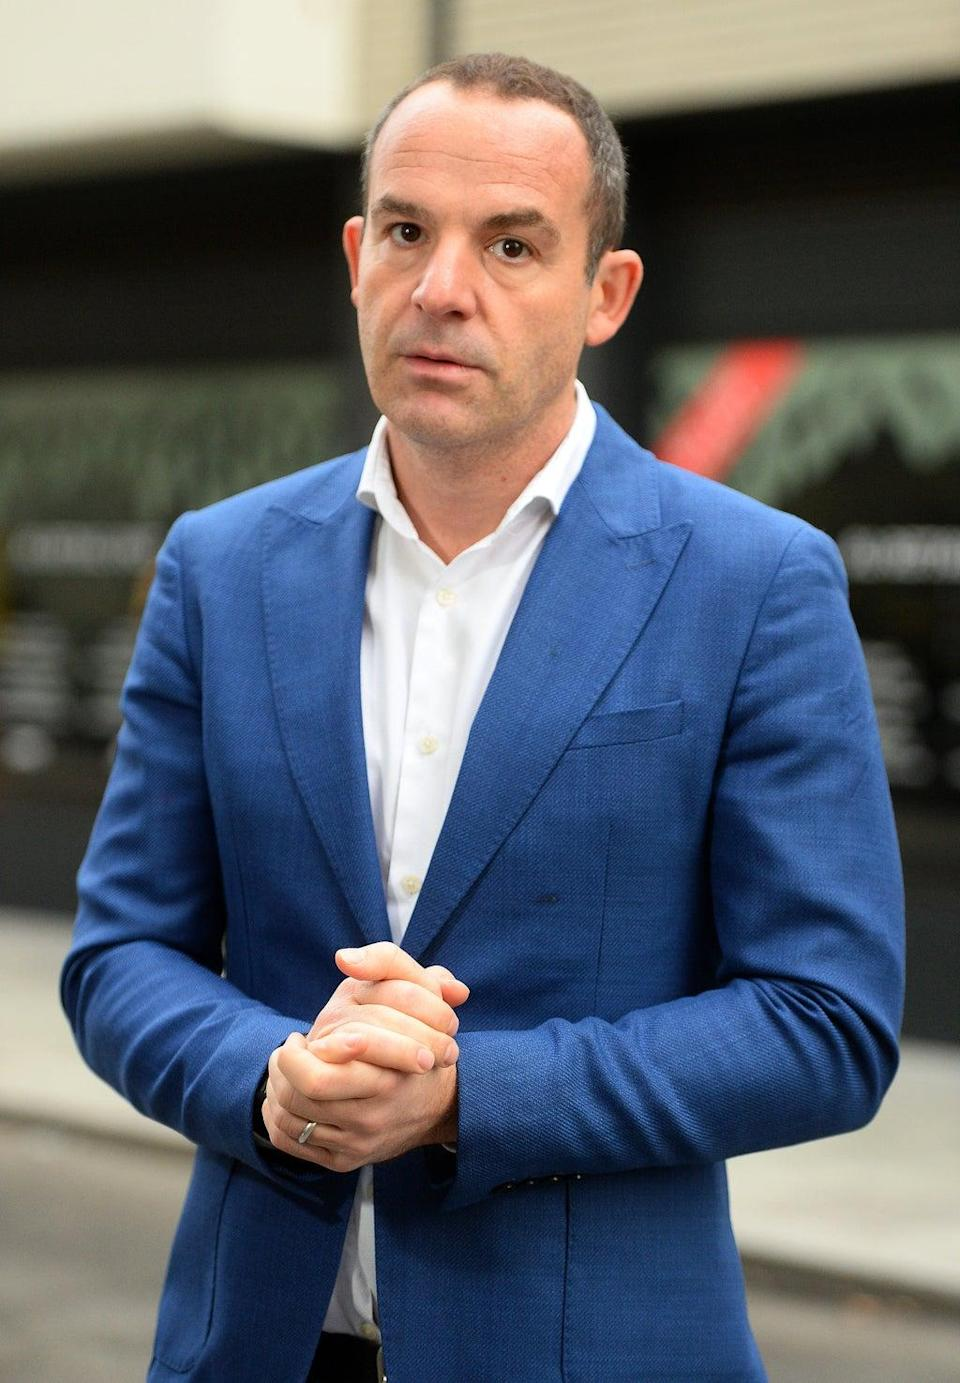 Martin Lewis's image and name have repeatedly been used by online fraudsters (Kirsty O'Connor/PA) (PA Archive)